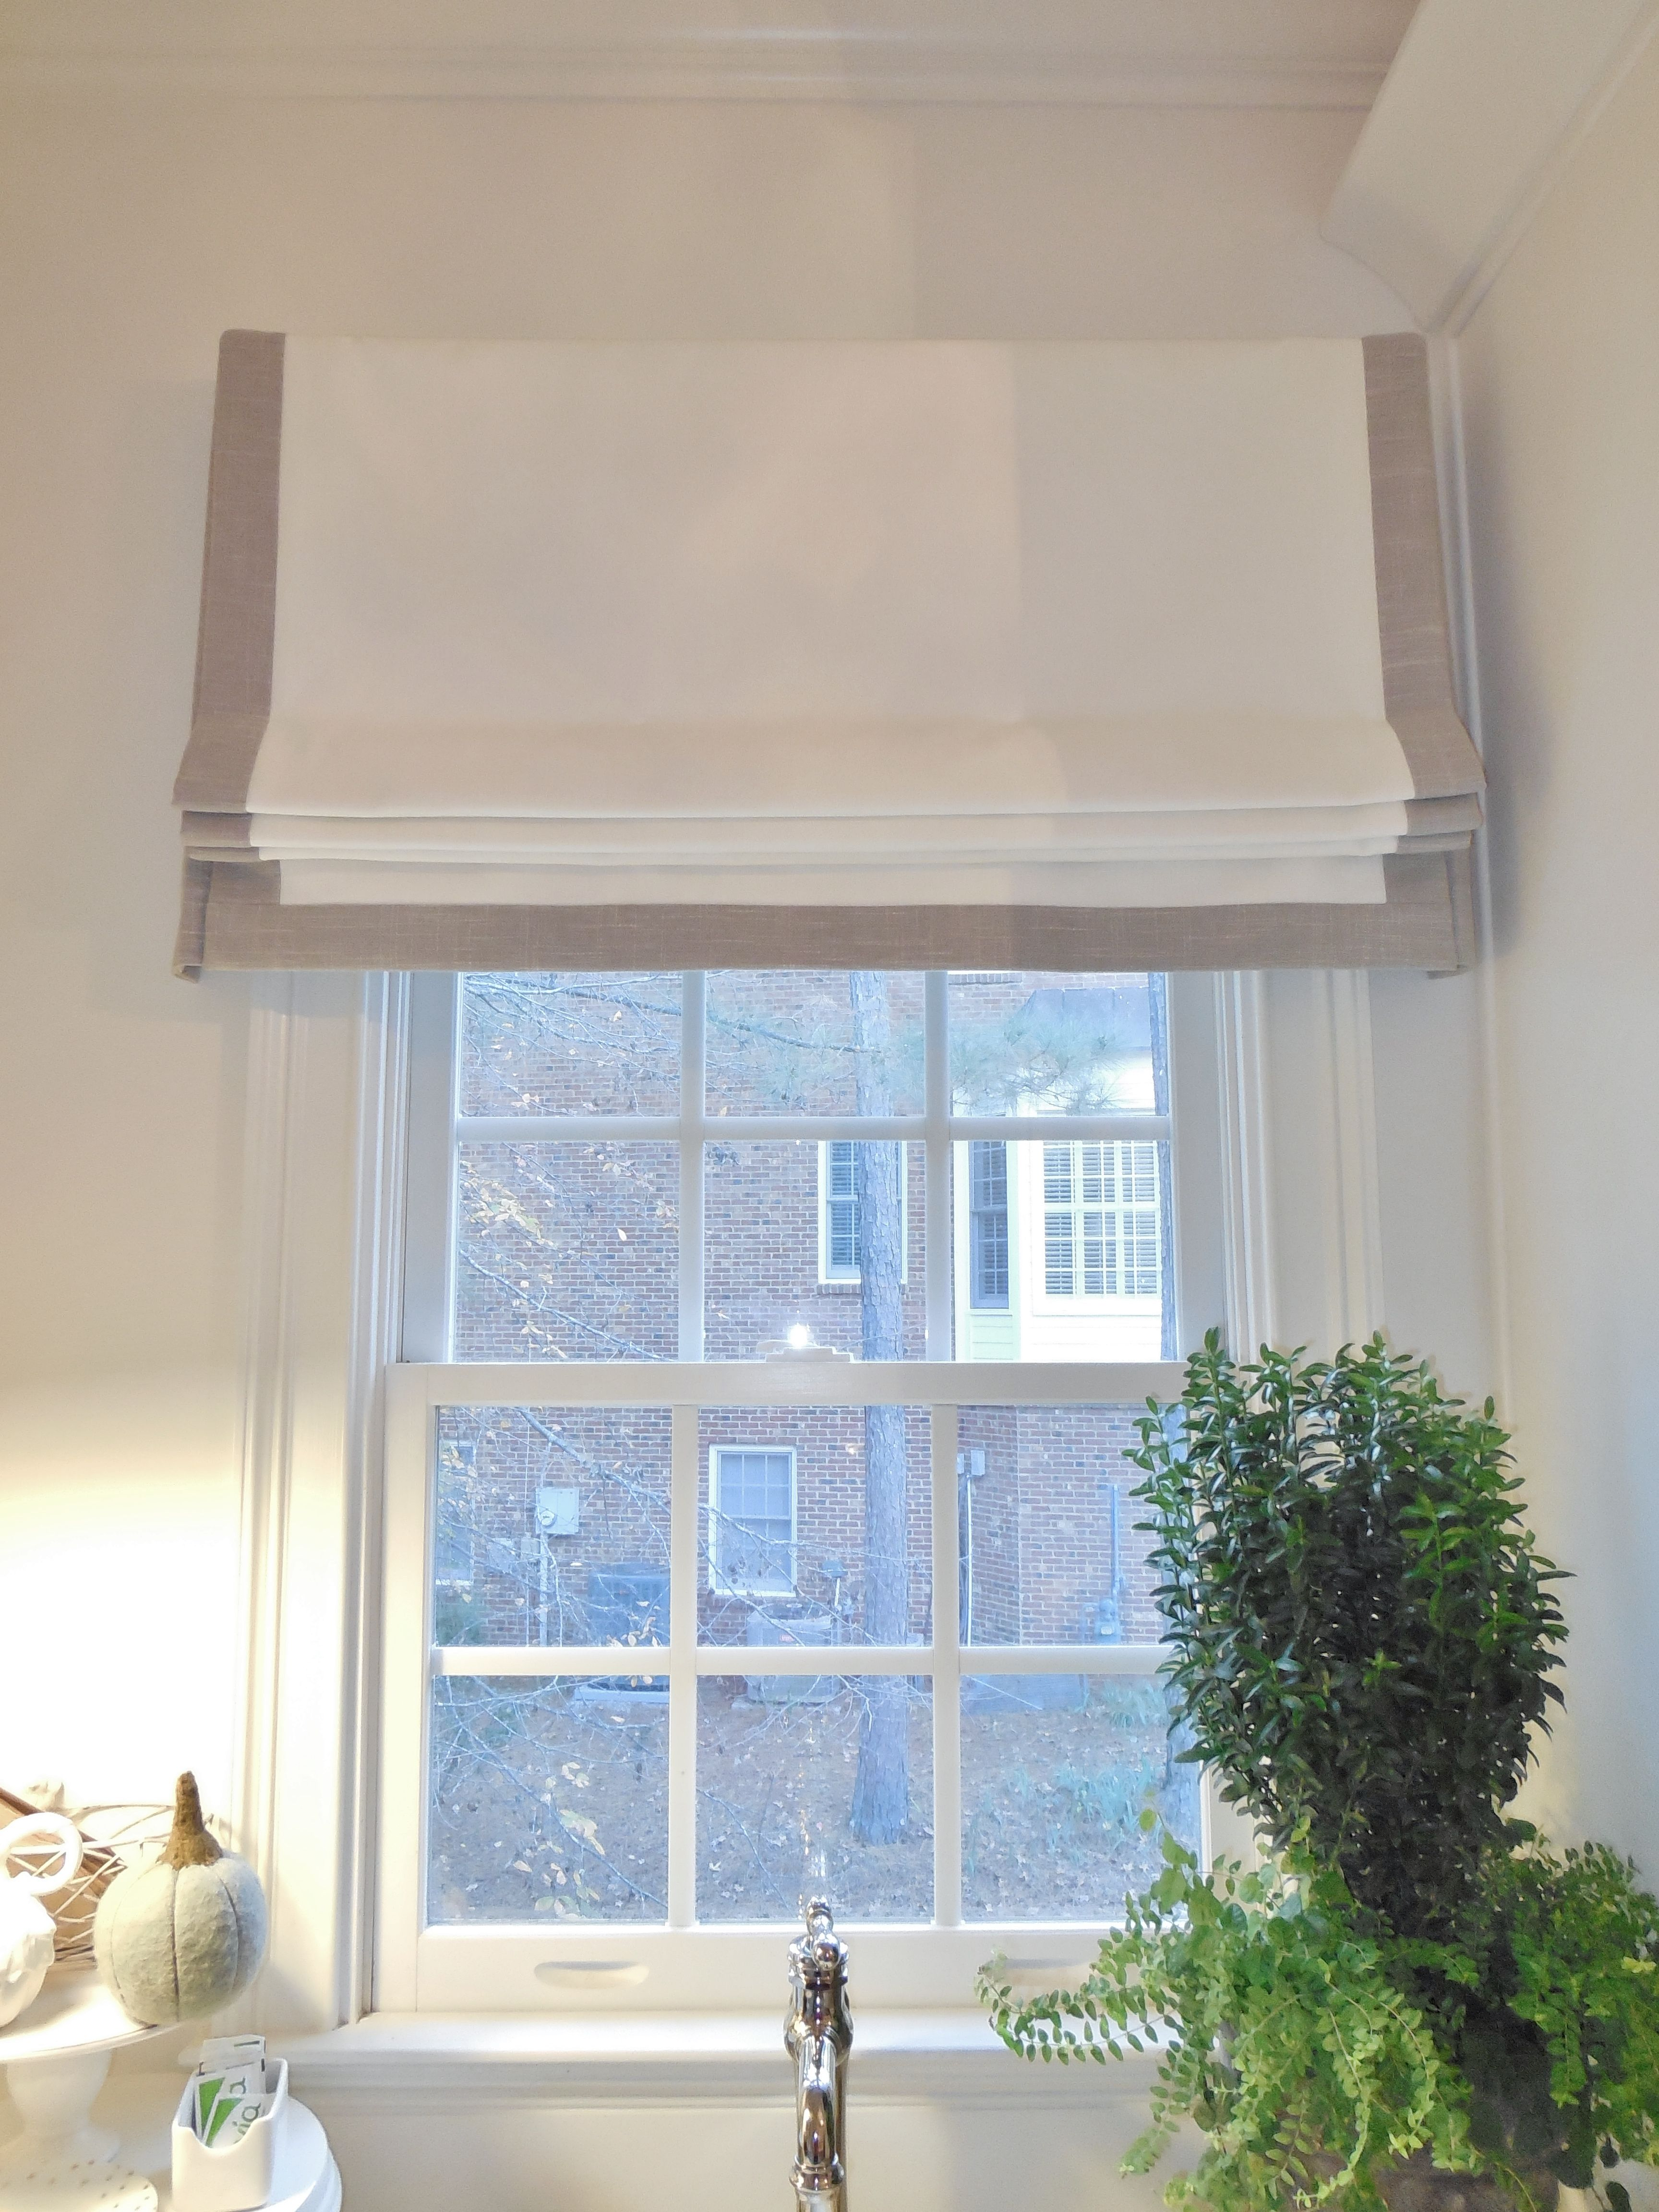 Banded Faux Flat Roman Shade This Was The Perfect Choice For This Laundry Room Window Treatments Living Room Flat Roman Shade Small Bathroom Window